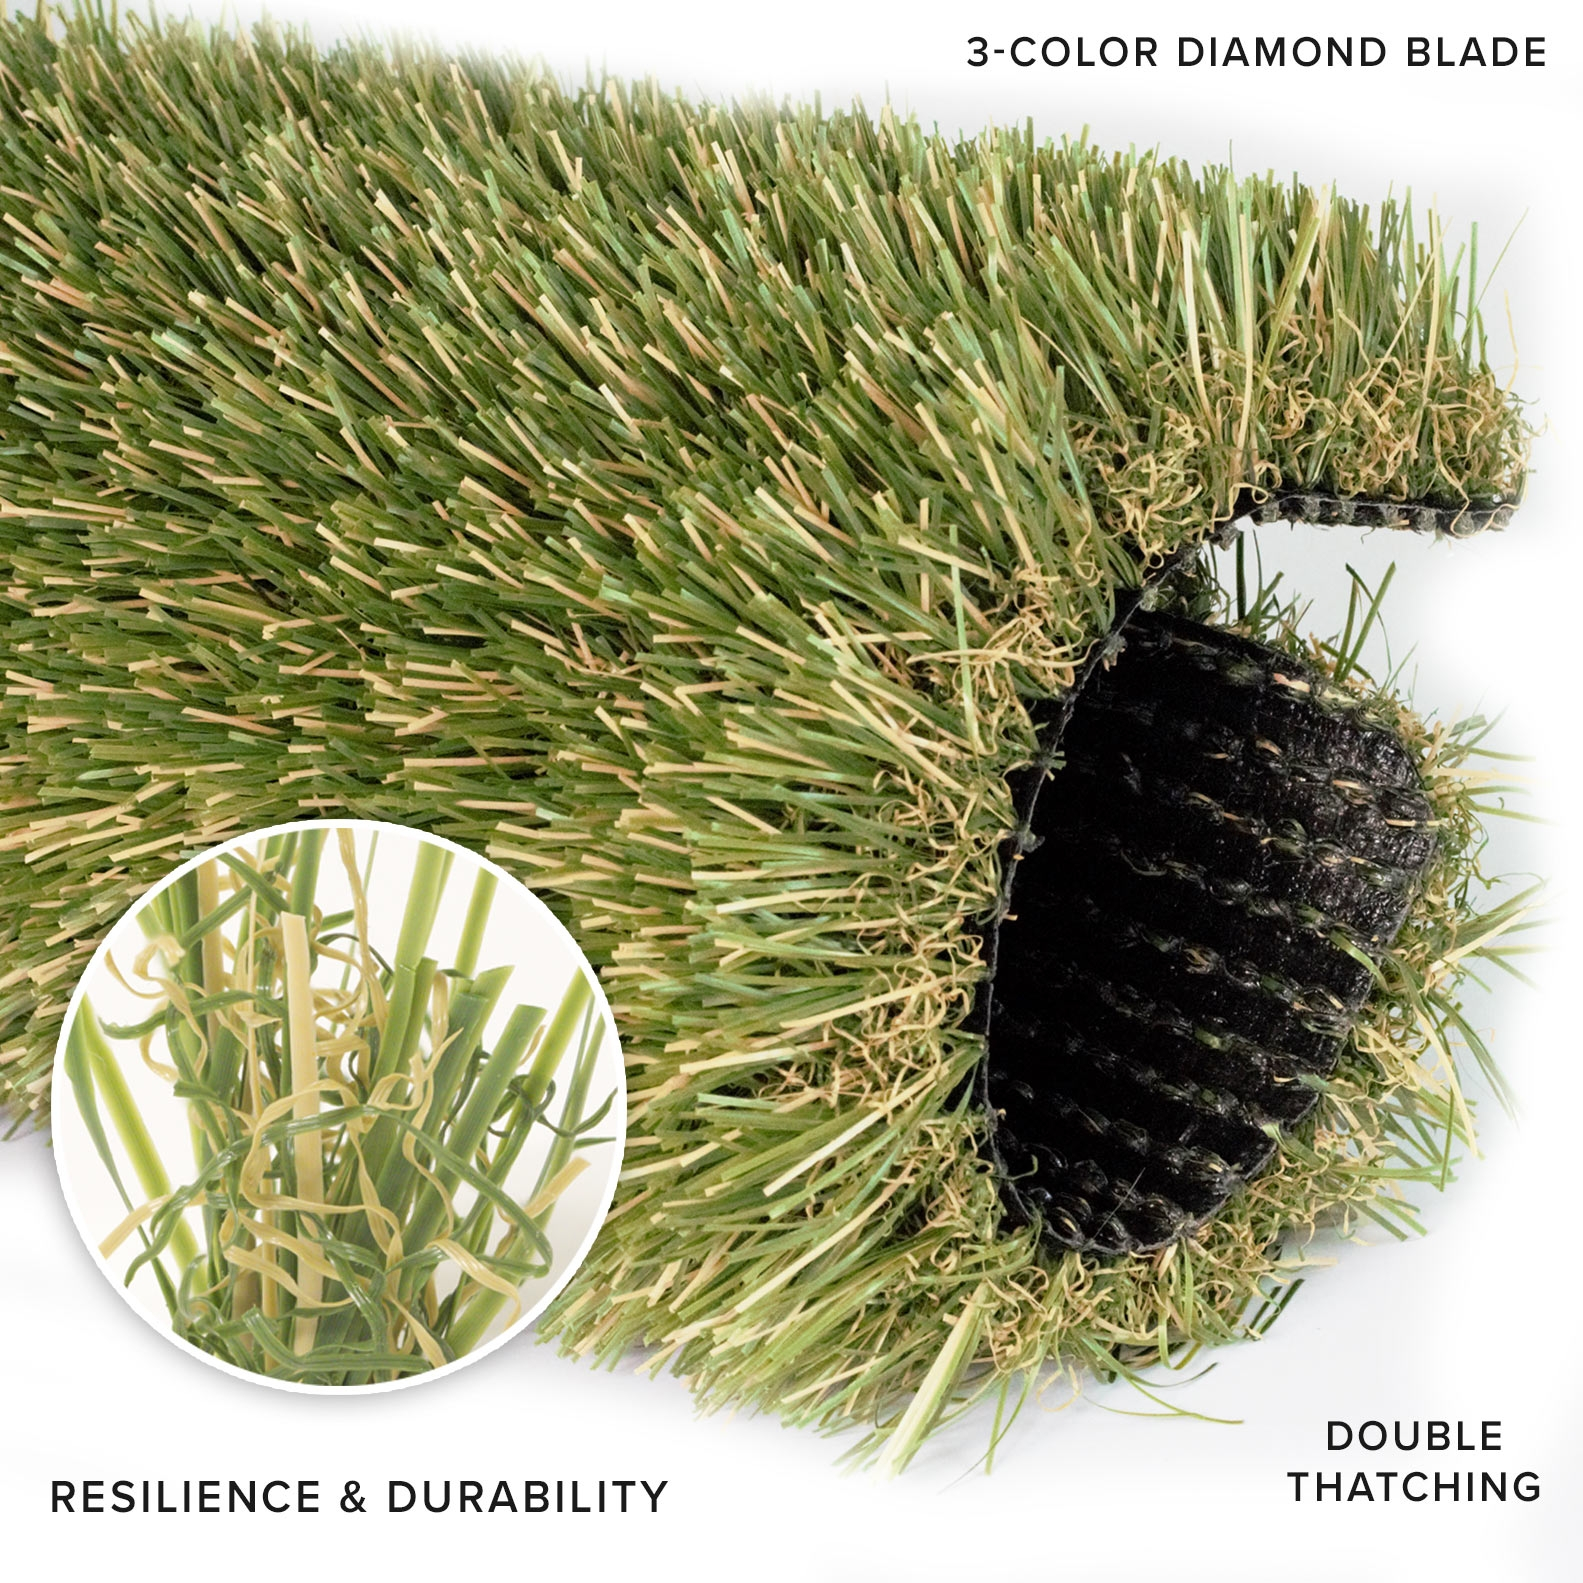 Natural Blade artificial grass. Double Thatching Layer. 3-color diamond blade. Resilience and durability.